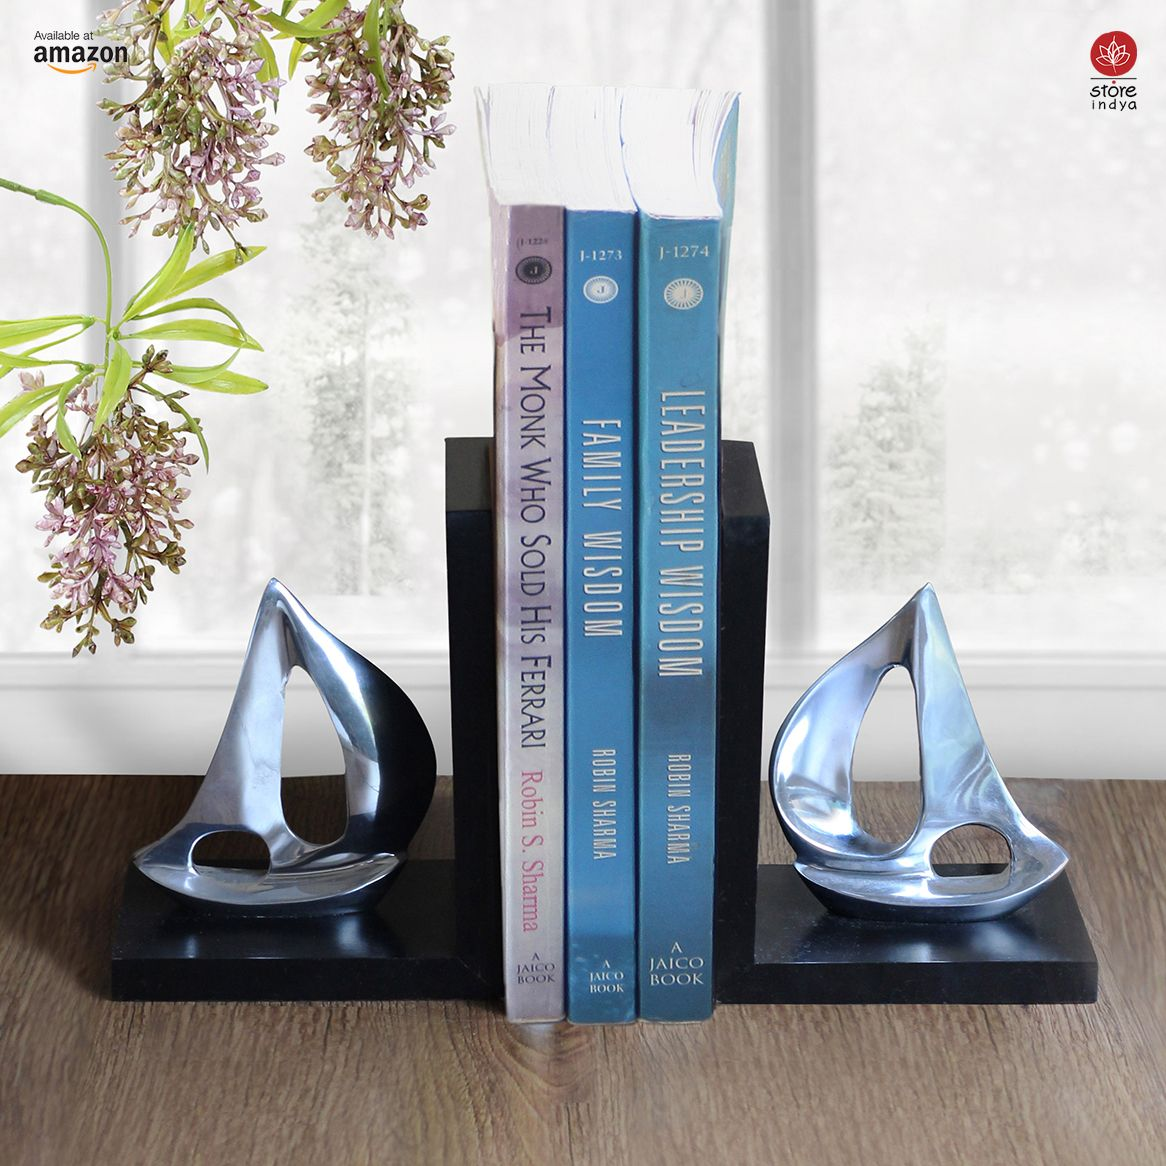 amazoncom  store indya  modern book ends display rack stand  - amazoncom  store indya  modern book ends display rack stand holderbookshelf organizer